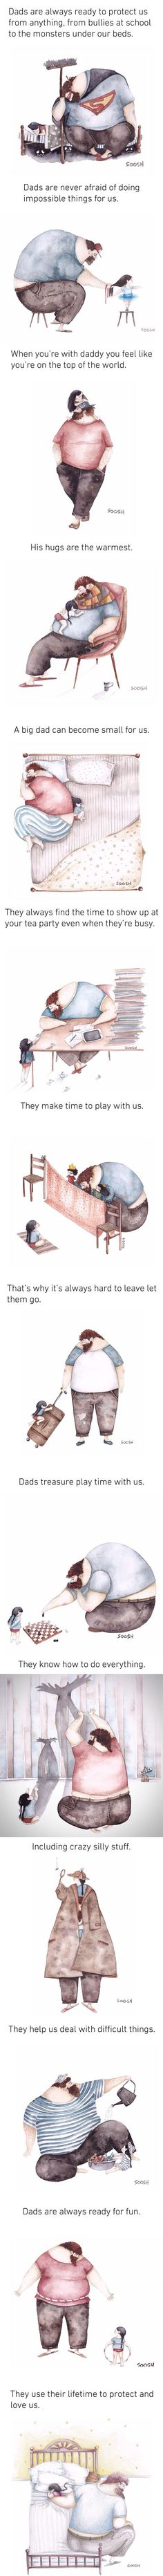 Heartwarming Illustrations About The Love Between Dads And Their Little Girls (By Soosh)